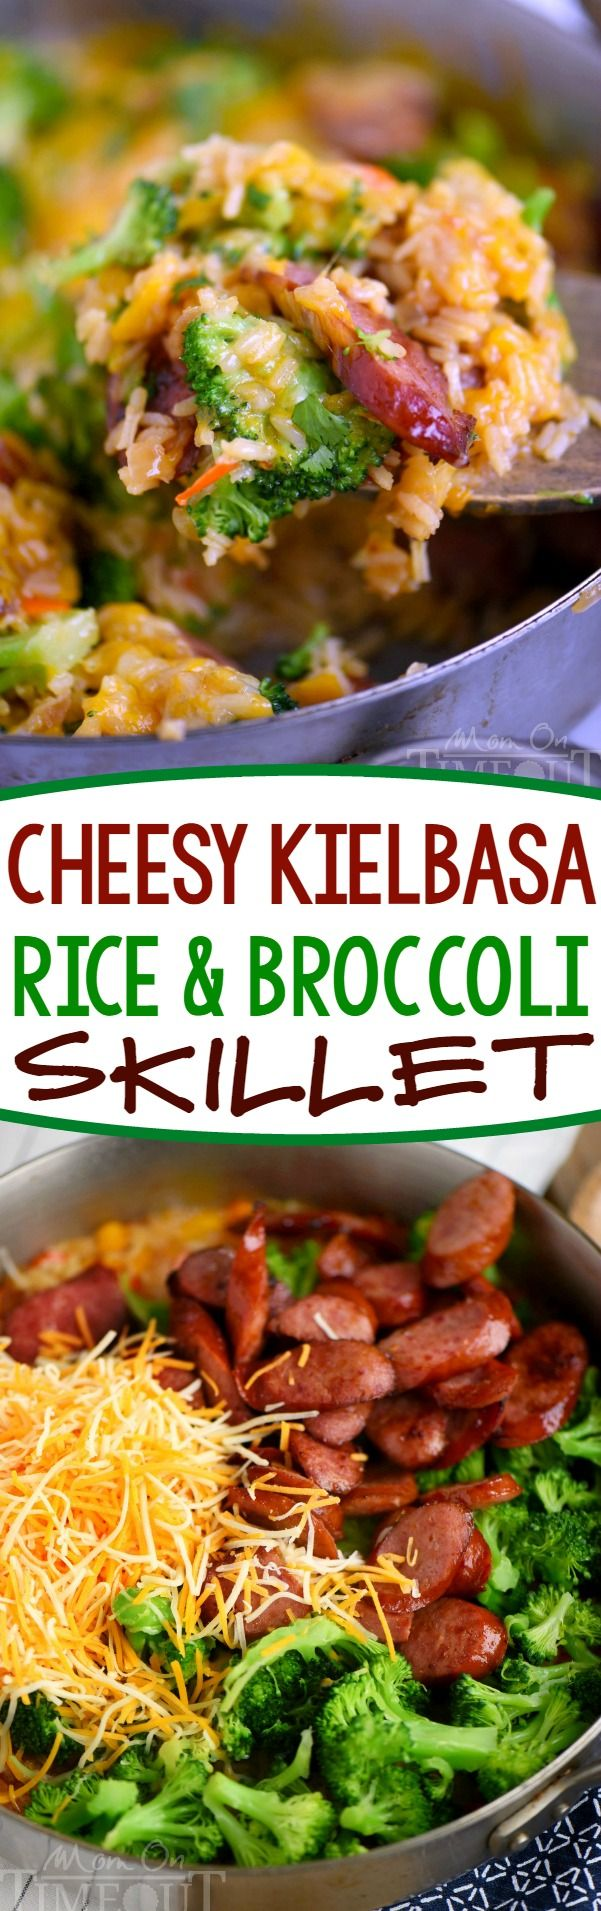 Cheesy Kielbasa, Rice and Broccoli Skillet - your new favorite dinner! This easy skillet recipe com